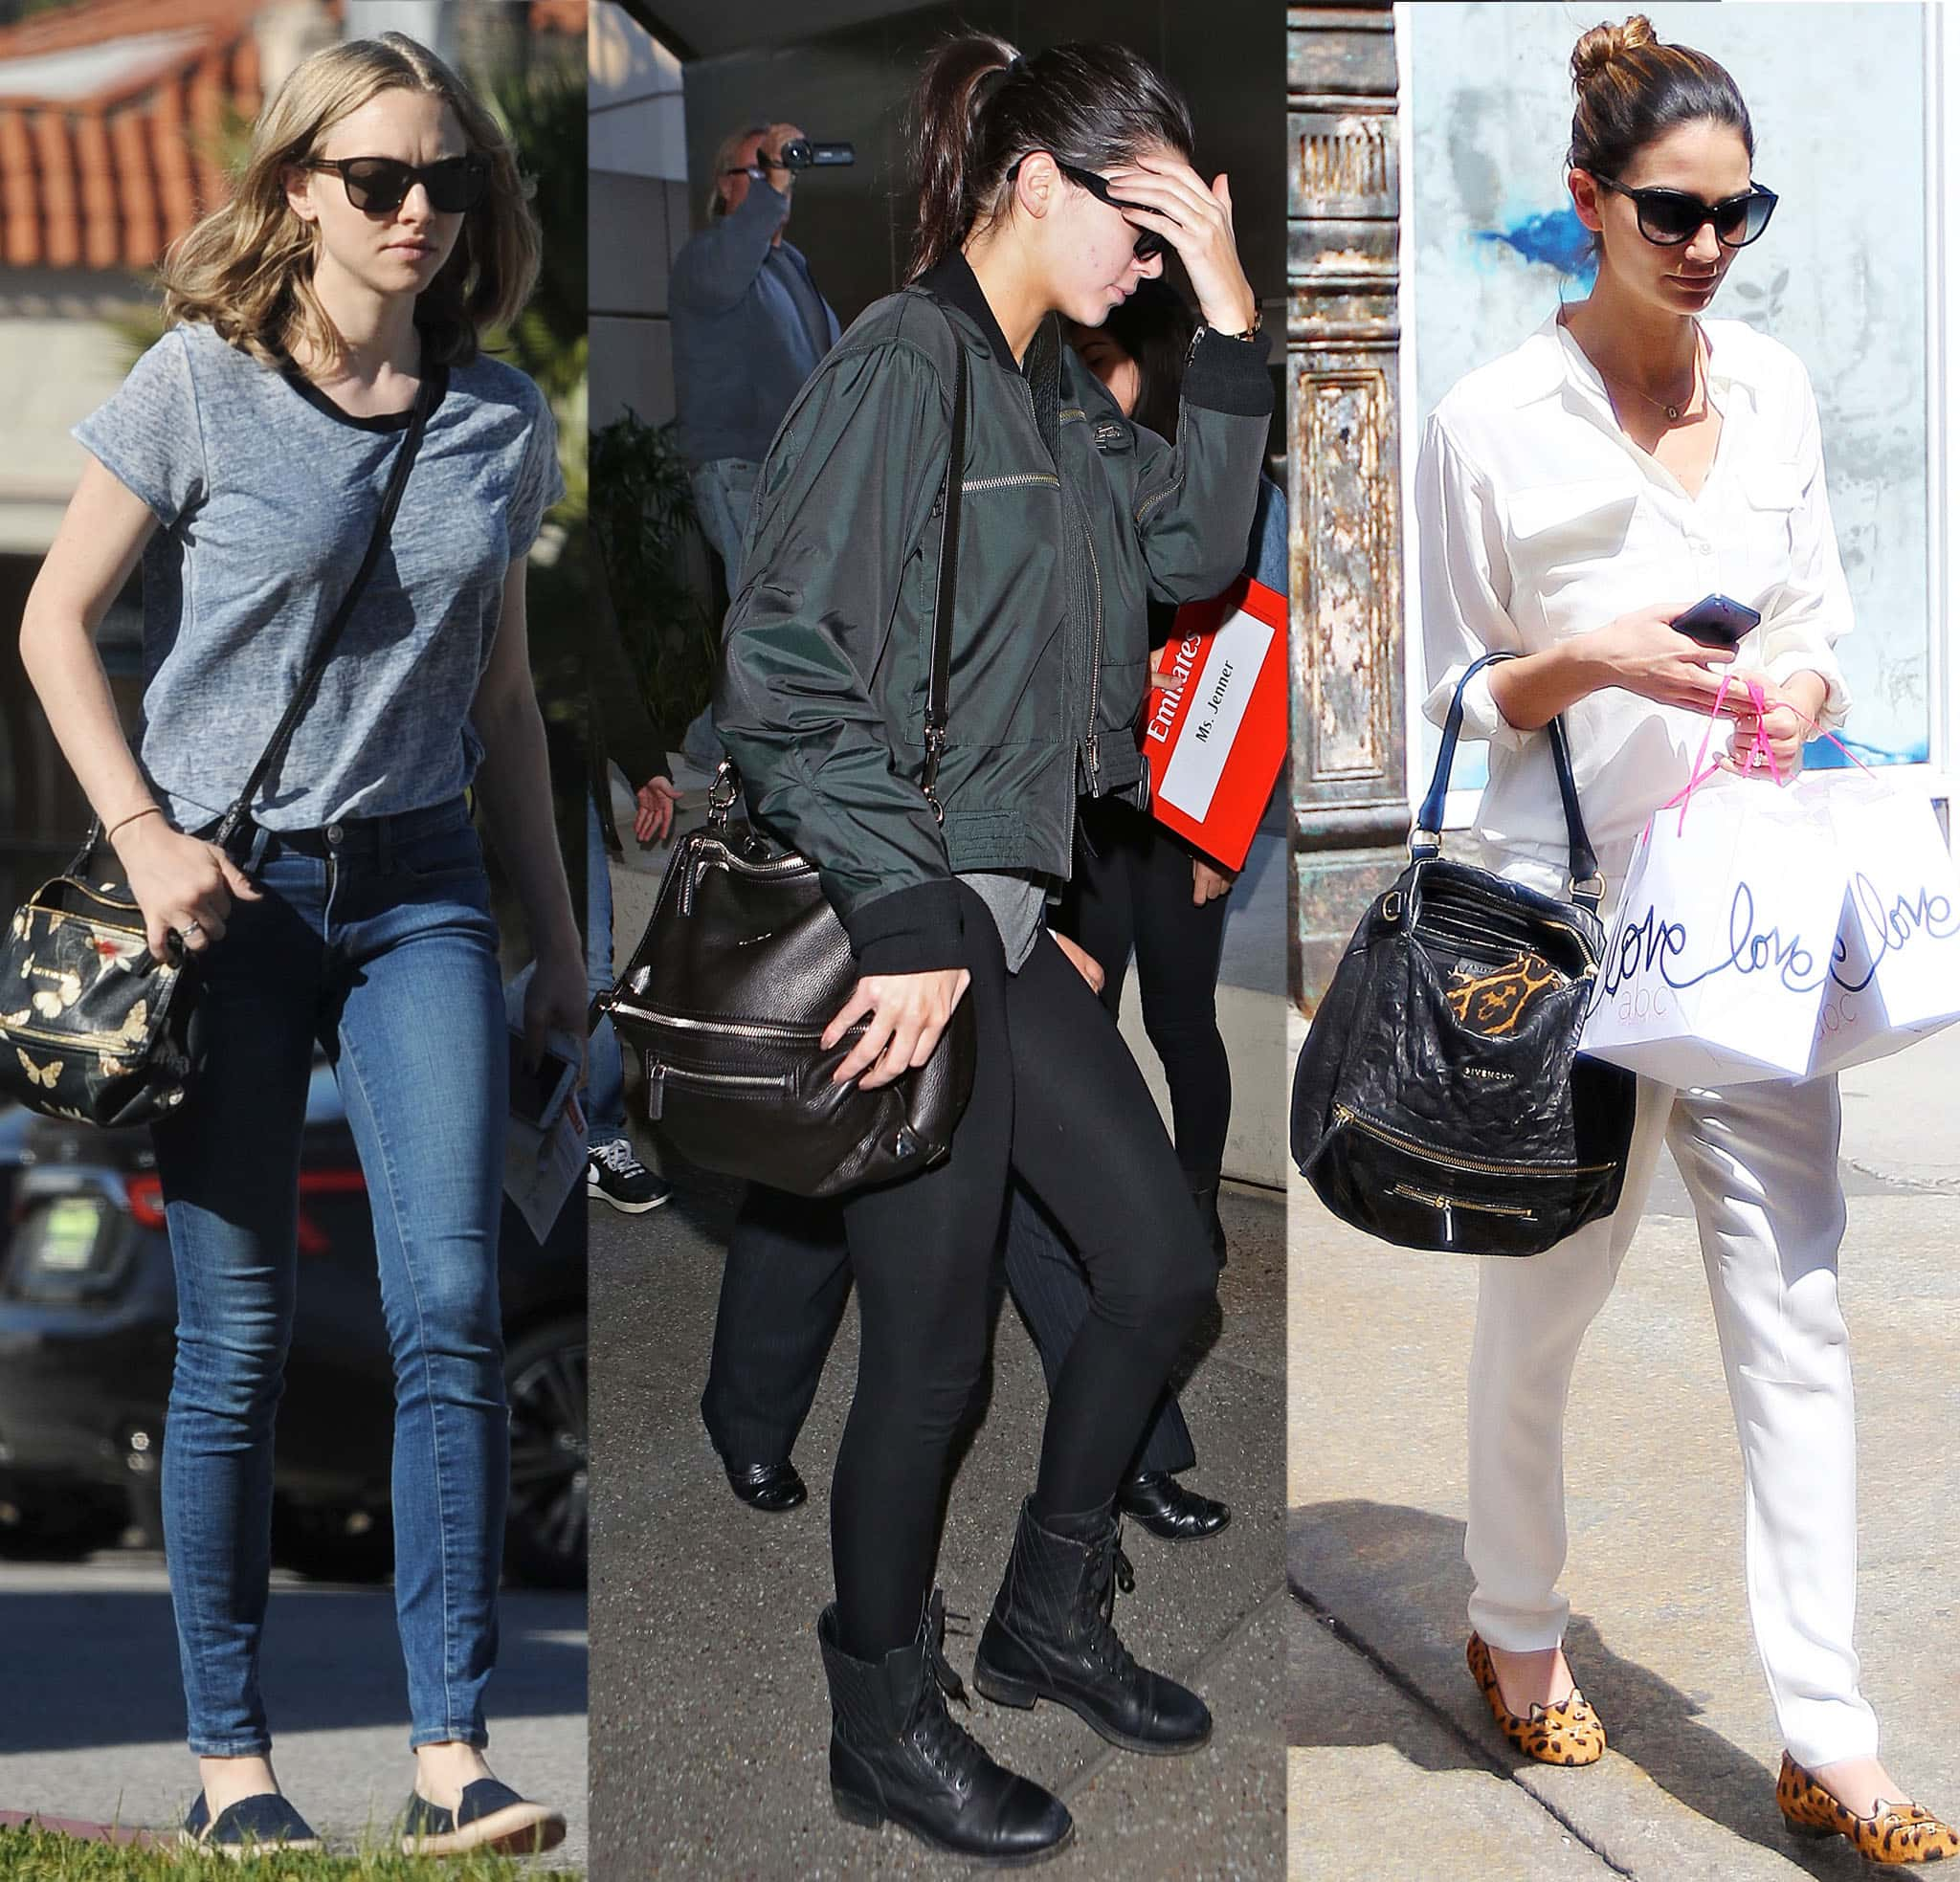 Amanda Seyfried, Kendall Jenner, and Lily Aldridge carrying different styles of the Givenchy Pandora bag